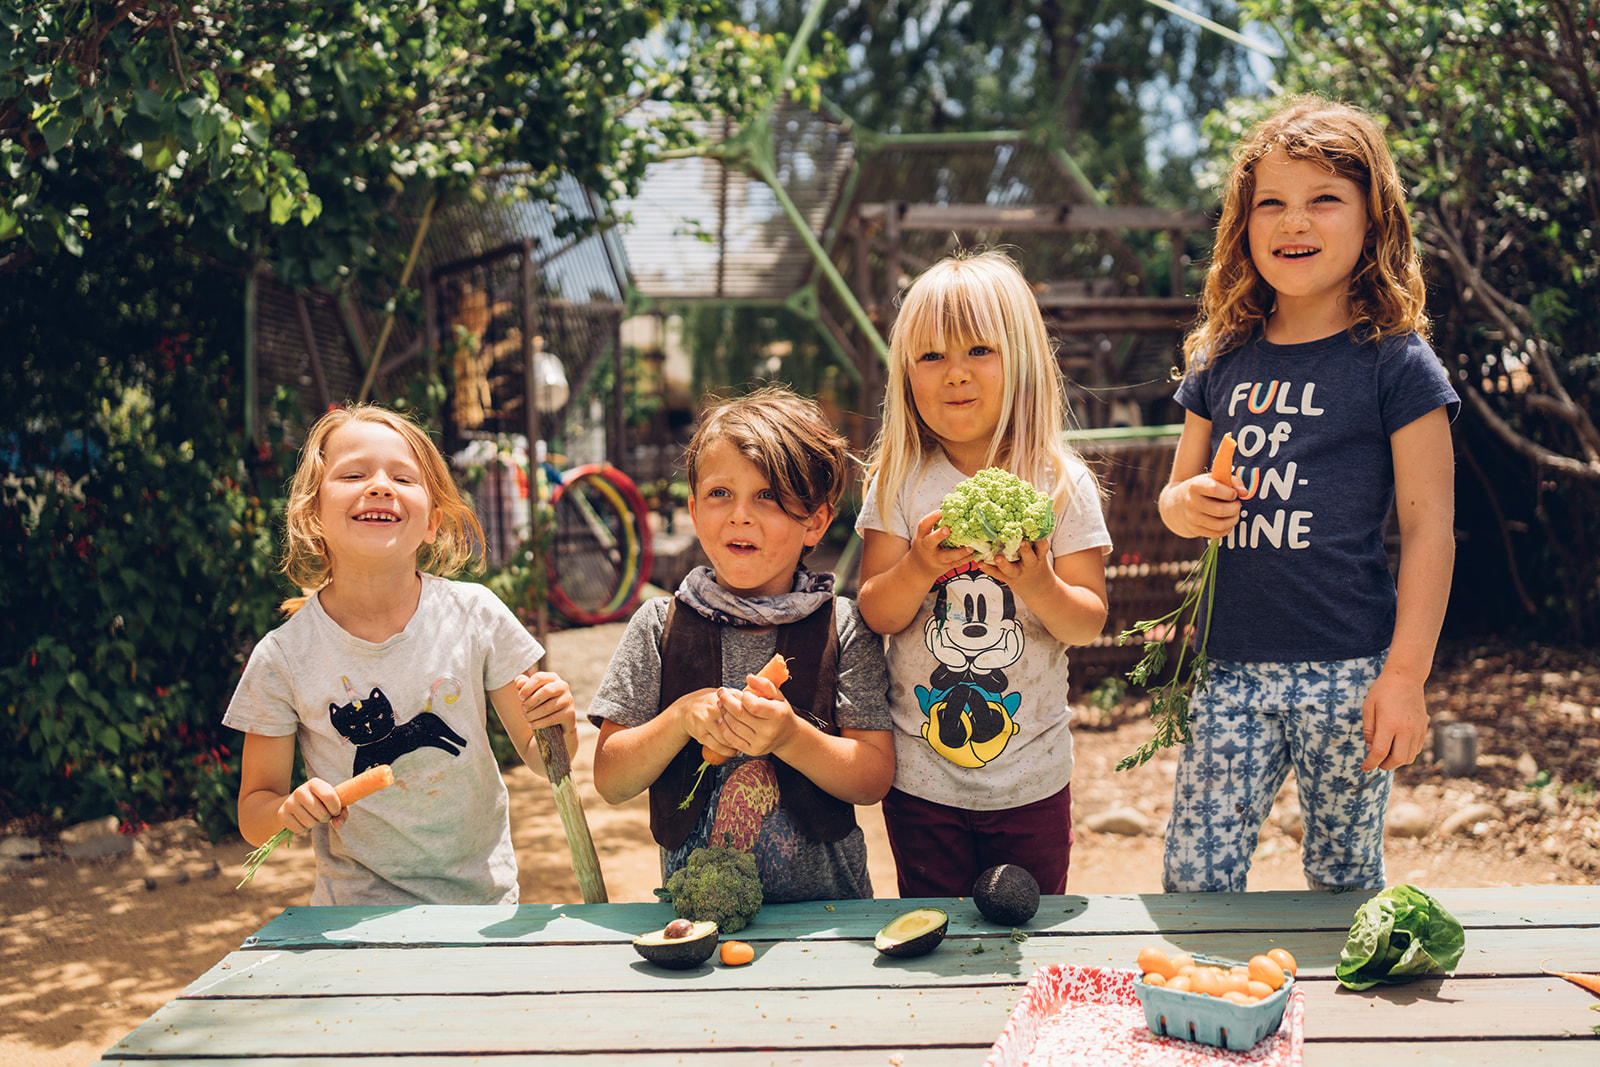 Group of young children sitting amongst harvested vegetables.